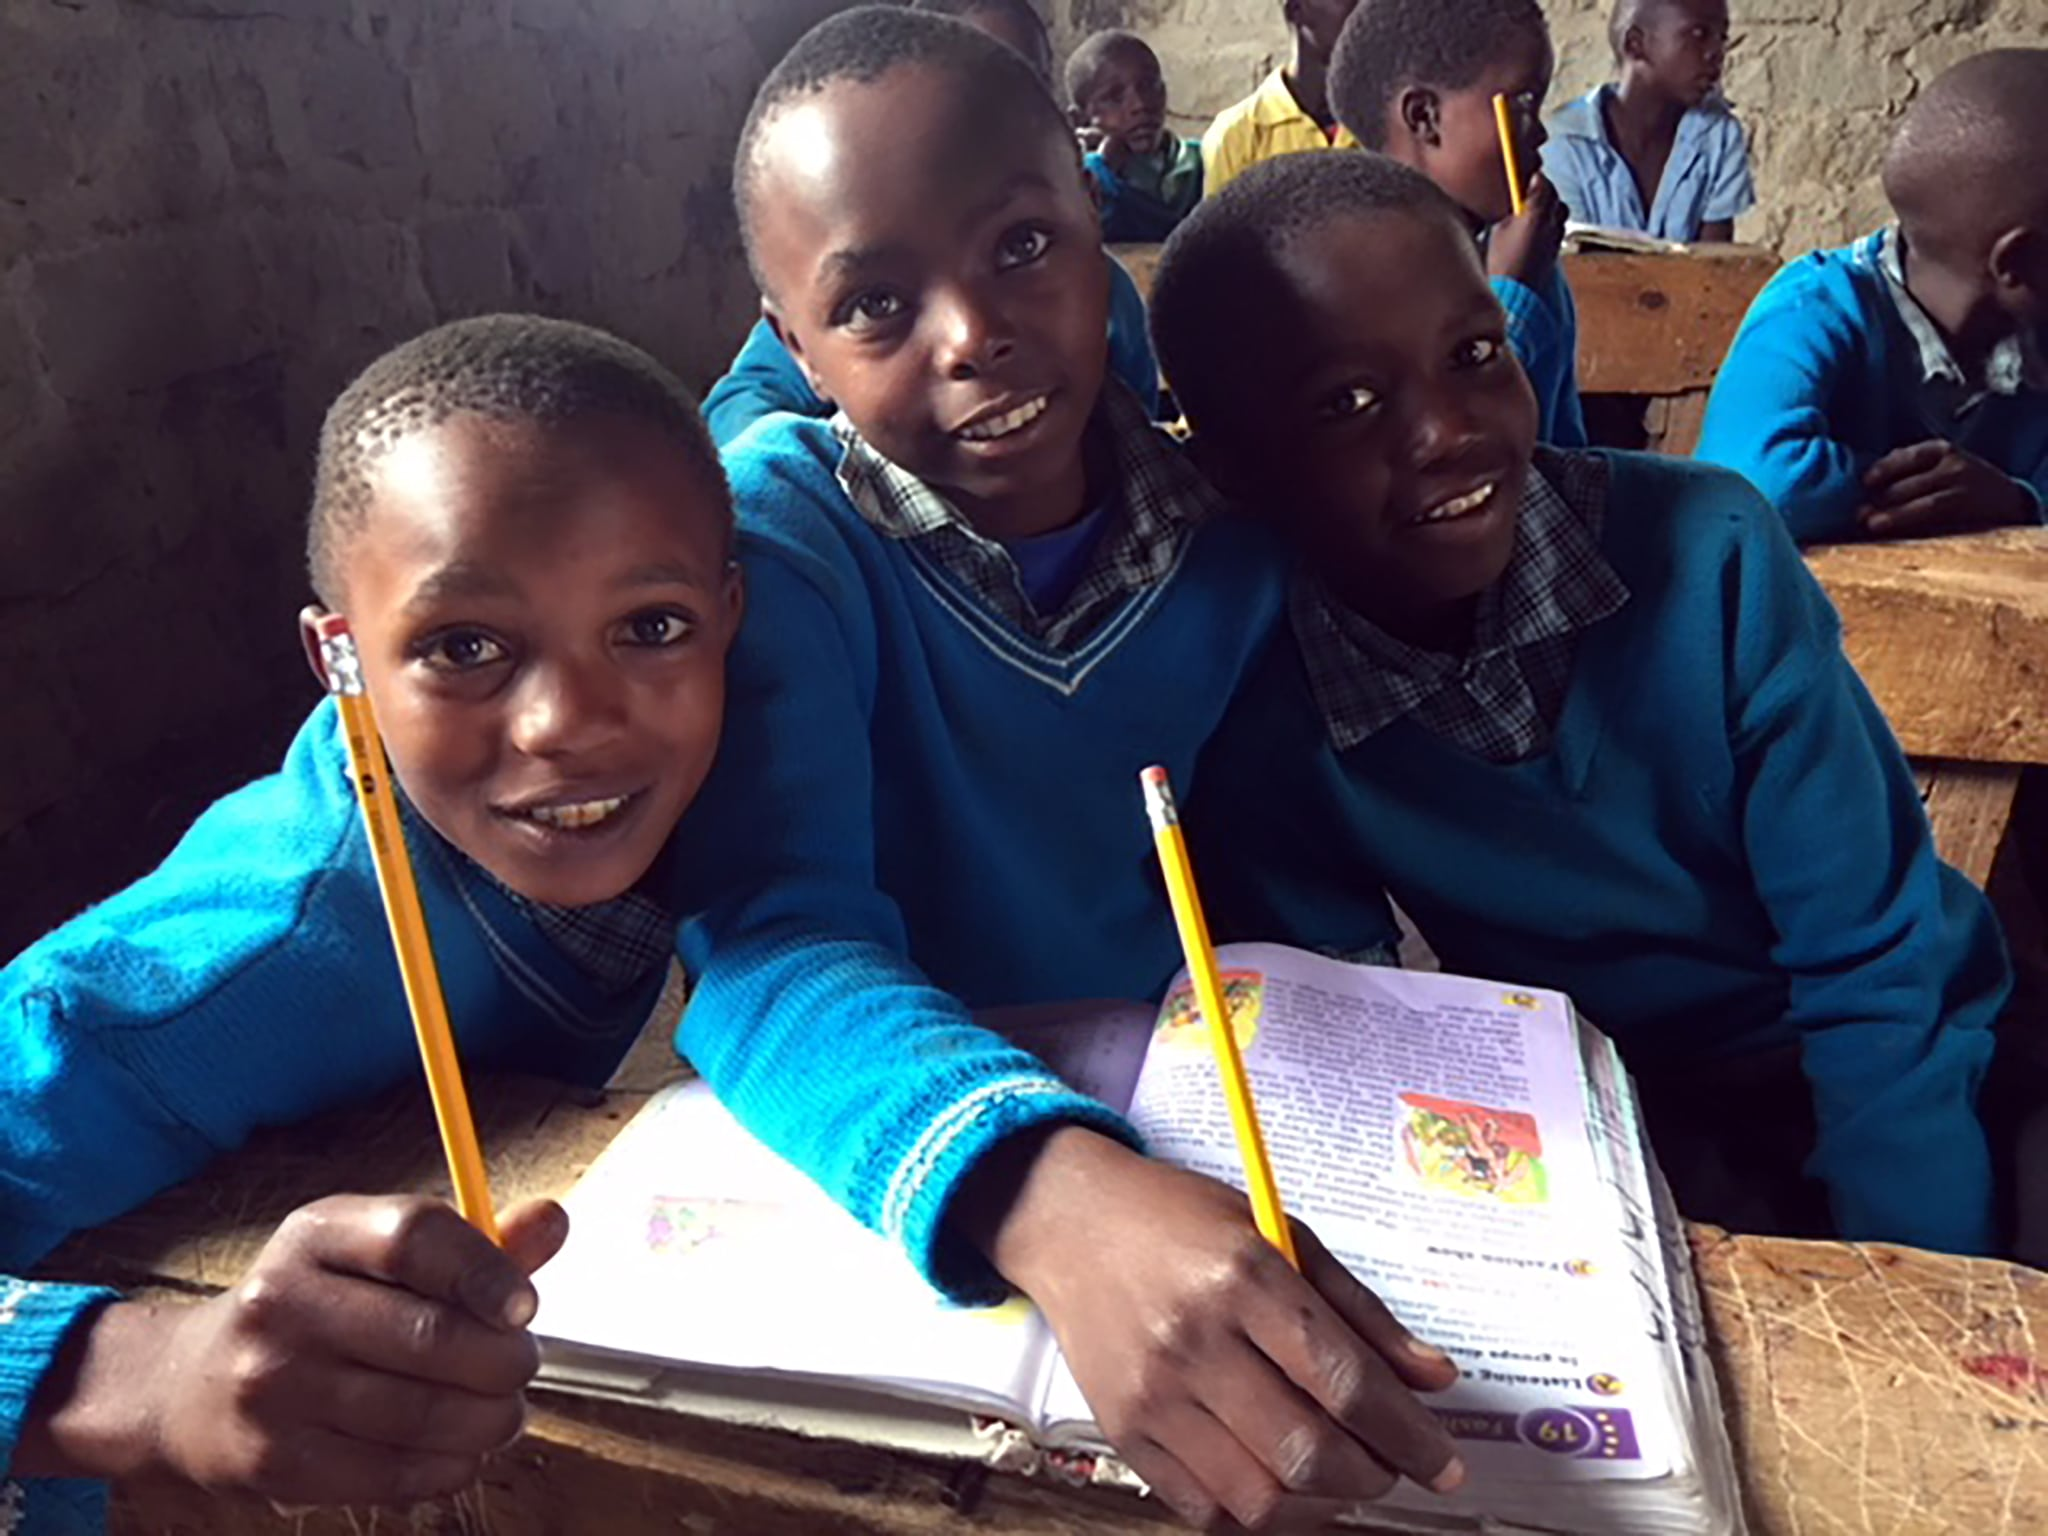 Students at Matanya Primary School are excited to thank their donors for the daily porridge and safe drinking water.